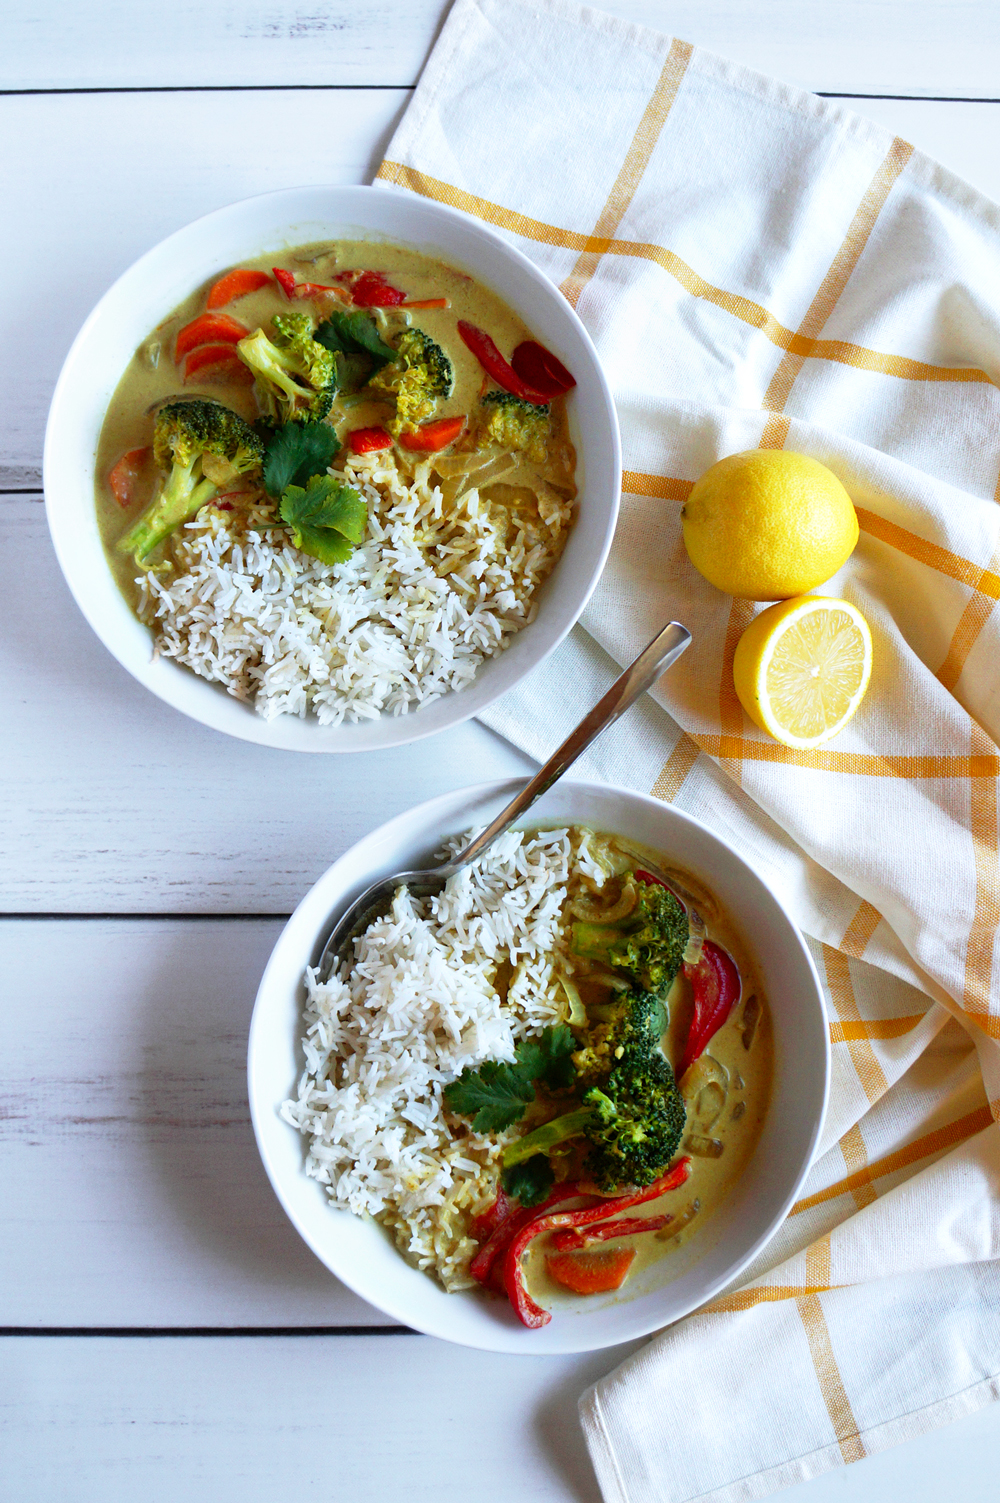 Two bowls of coconut curry on a white wooden table, with a white and orange striped tea towel and lemons.